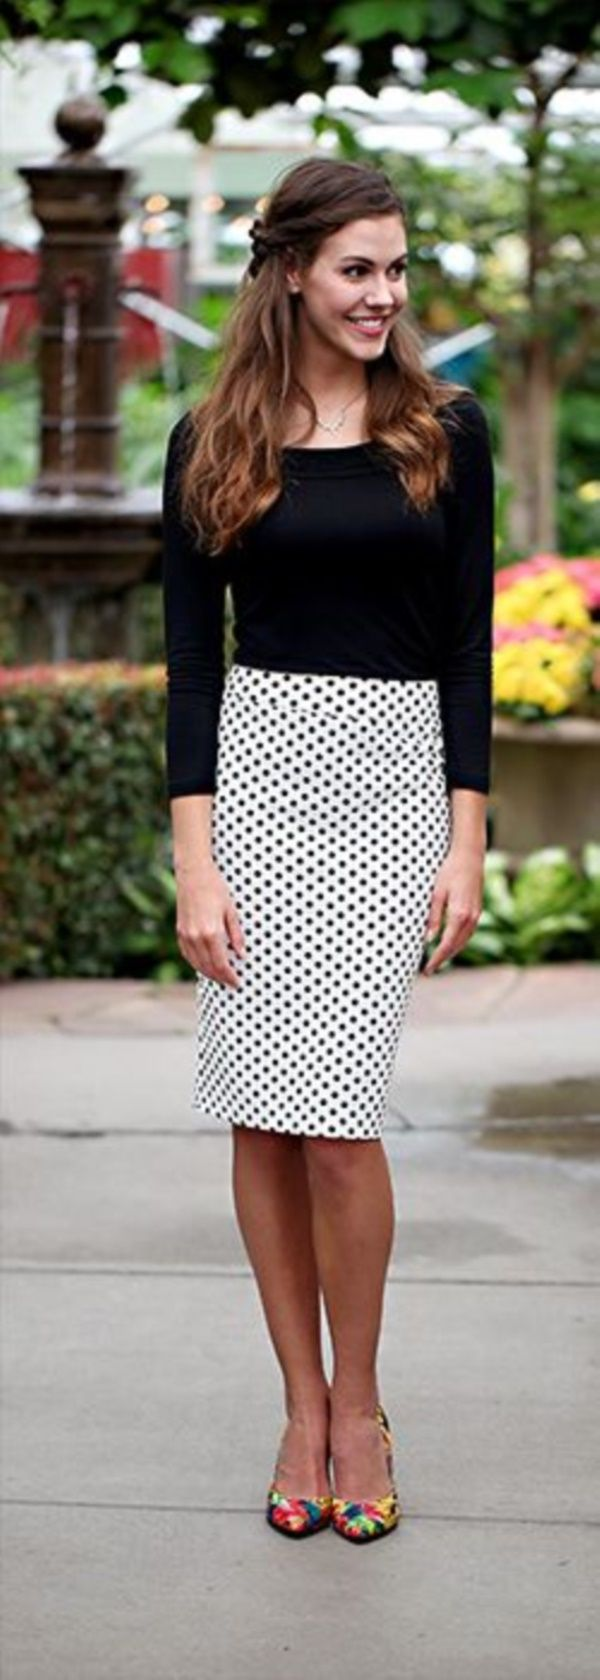 Love this skirt and would like the shirt if it were shorter sleeves.  Lori